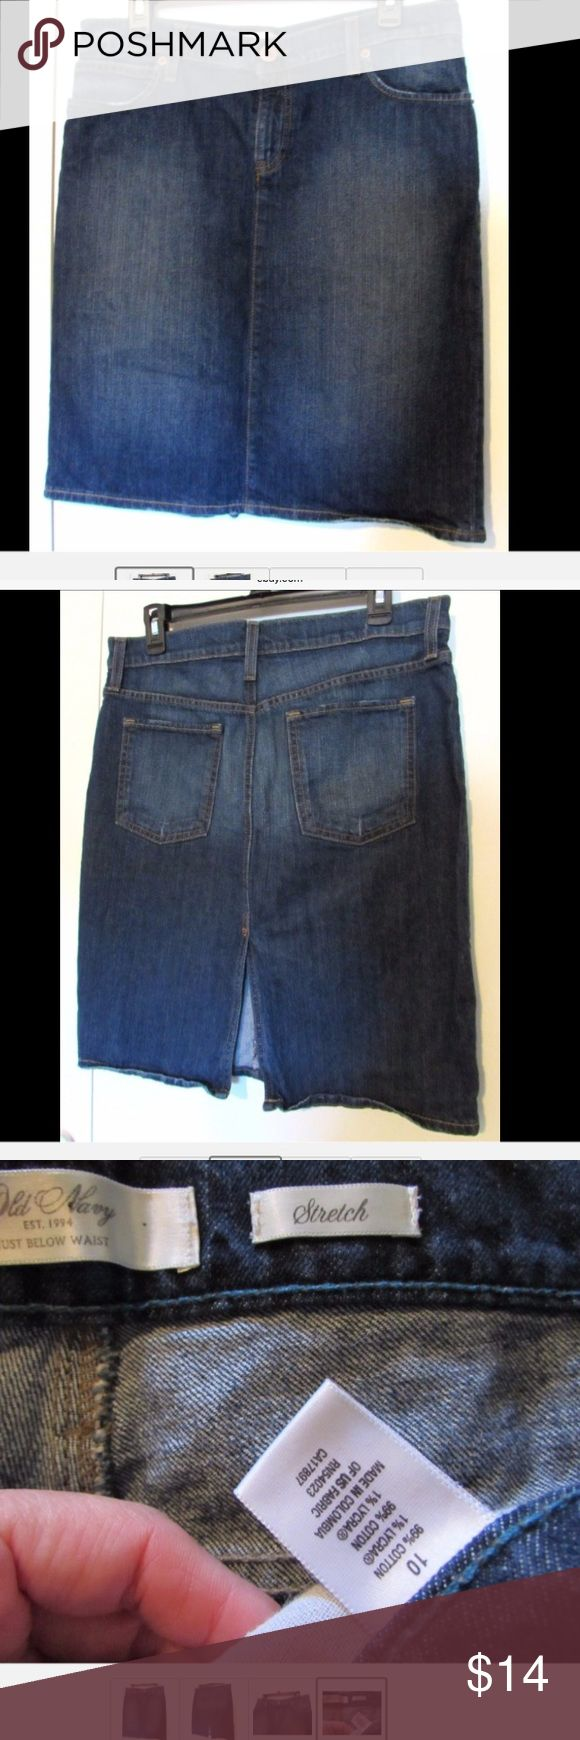 """Old Navy Pencil Jeans Denim Skirt Sz 10 For sale is this gently used denim jeans pencil skirt by Old Navy. Sz 10. Very nice condition, dark blue wash. Cotton/Lycra blend.   Measures 34"""" diameter just below the waist, 21"""" long roughly, with an 8"""" back vent. Bundle and save! Old Navy Skirts Pencil"""